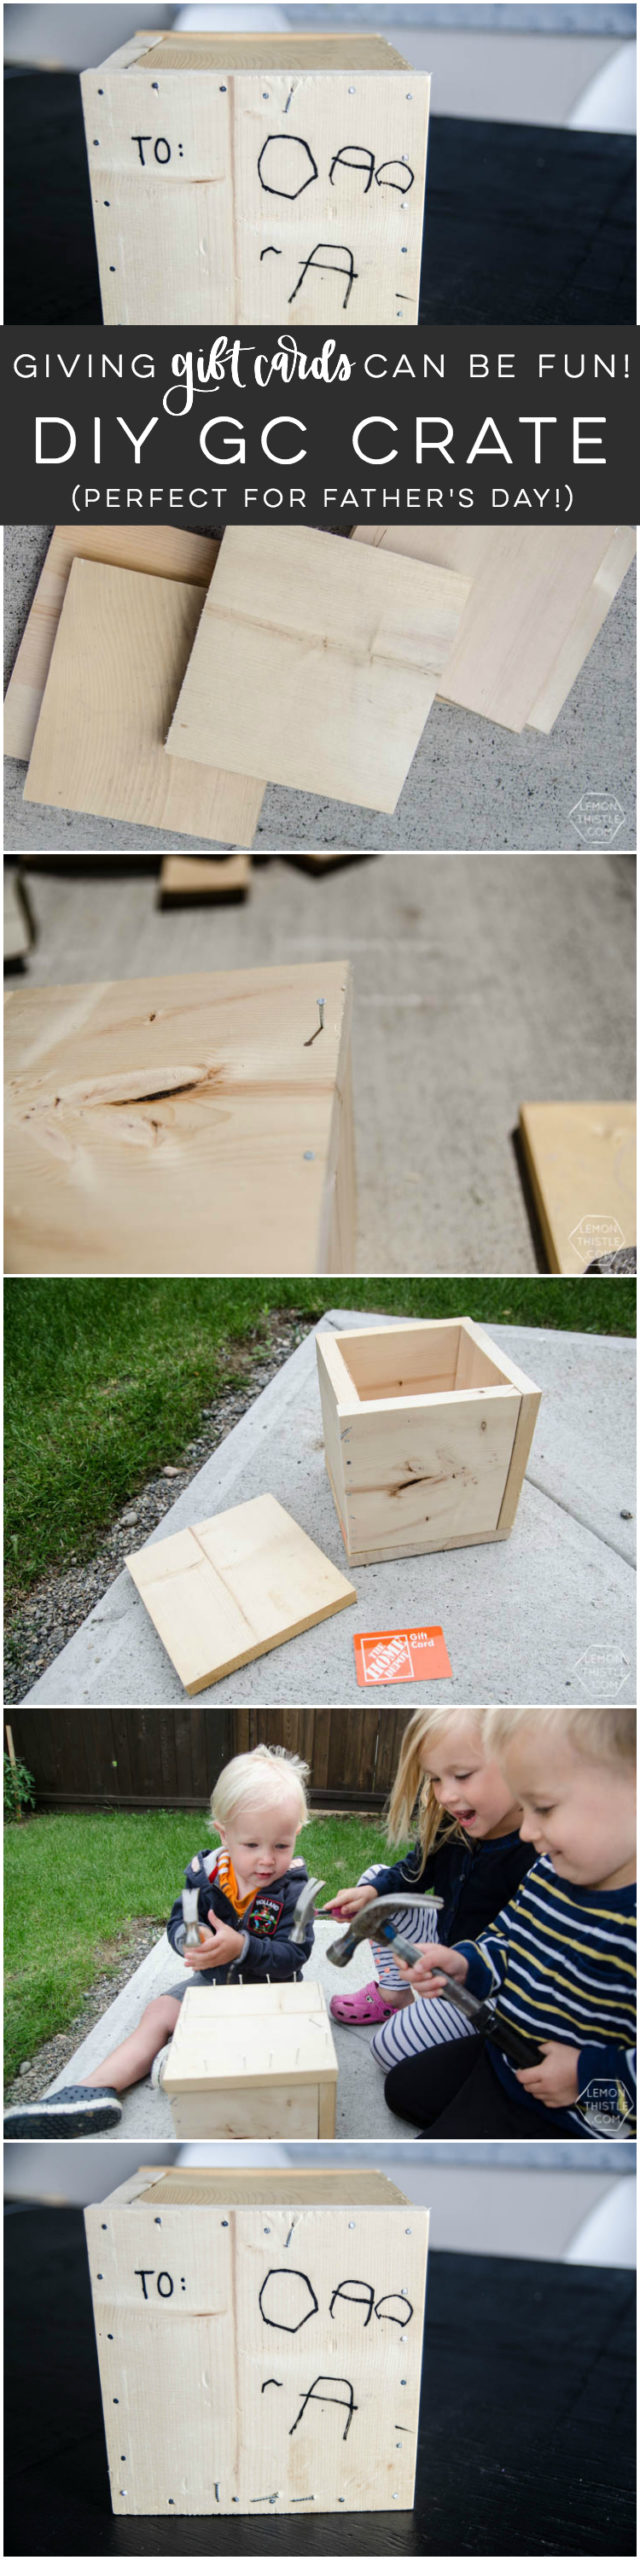 Gift Card packaging idea- wood crate DIY with kids